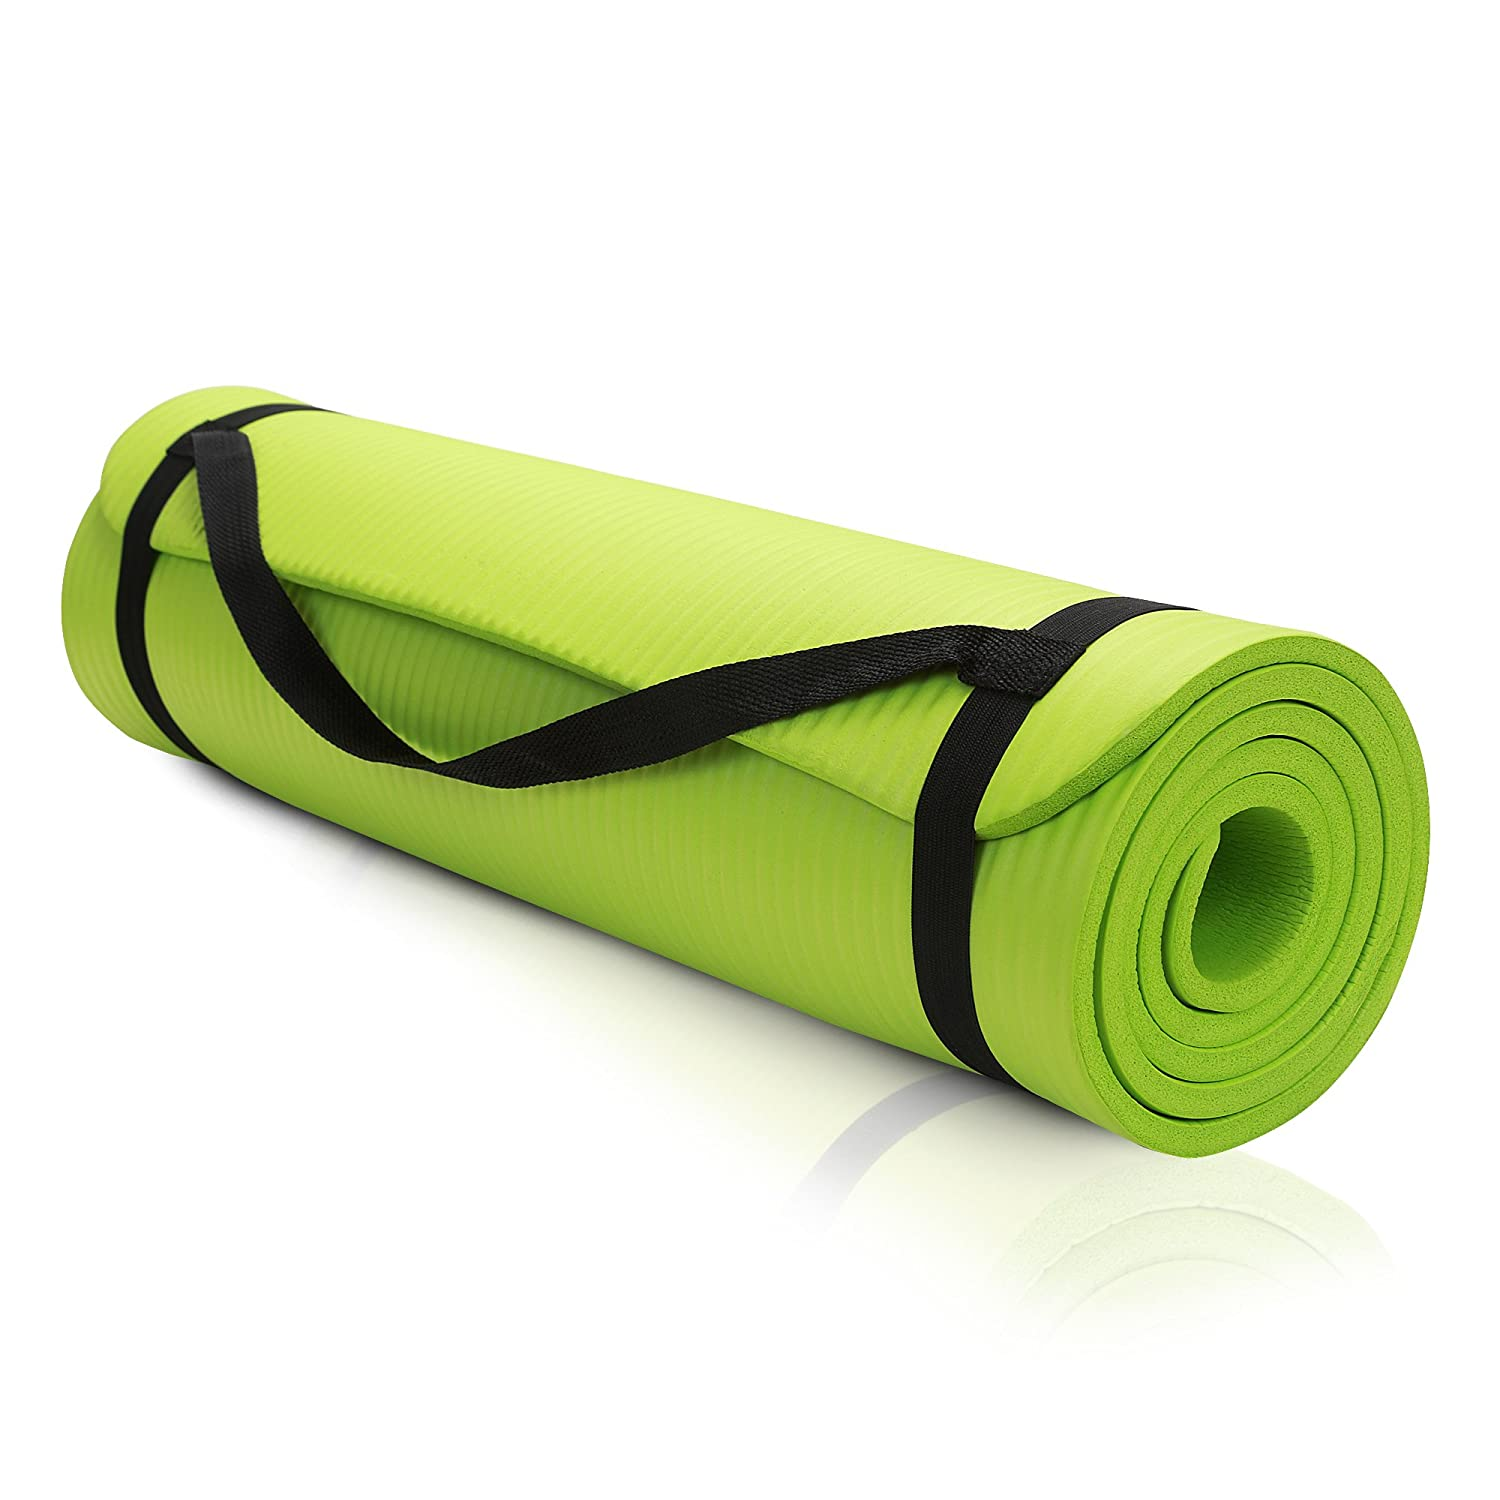 Exercise mat by Athletic Intuition